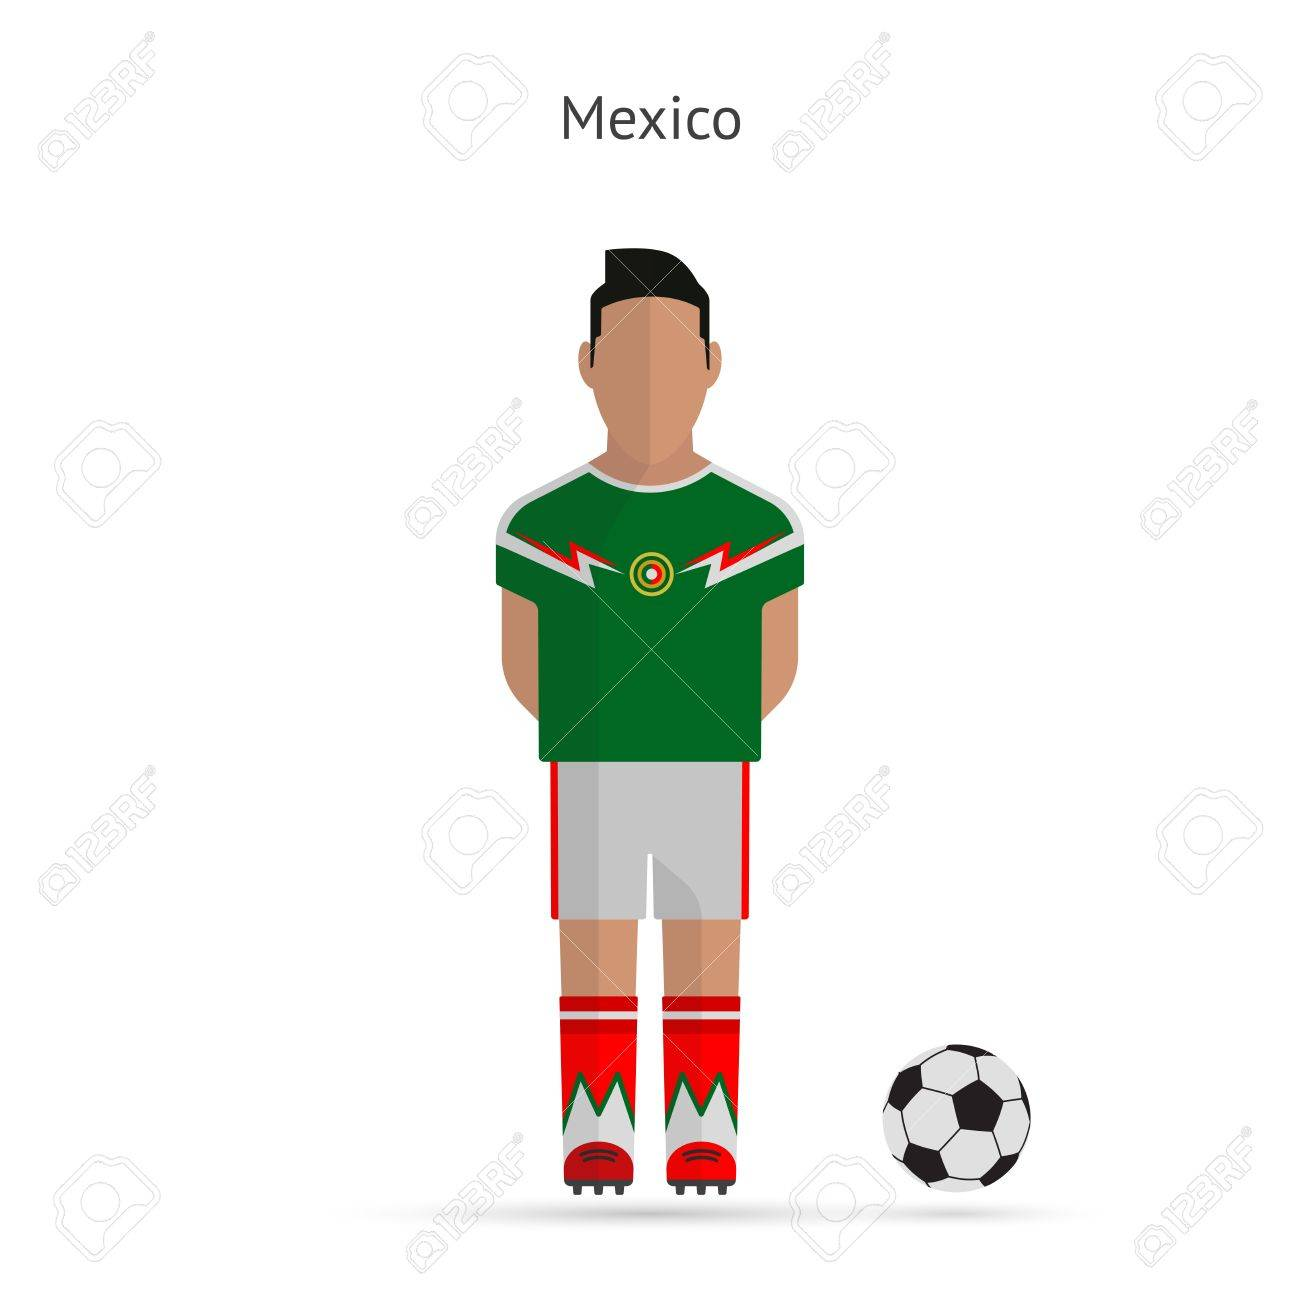 8a6fdf95505 National football player. Mexico soccer team uniform. Vector illustration.  Stock Vector - 27163336